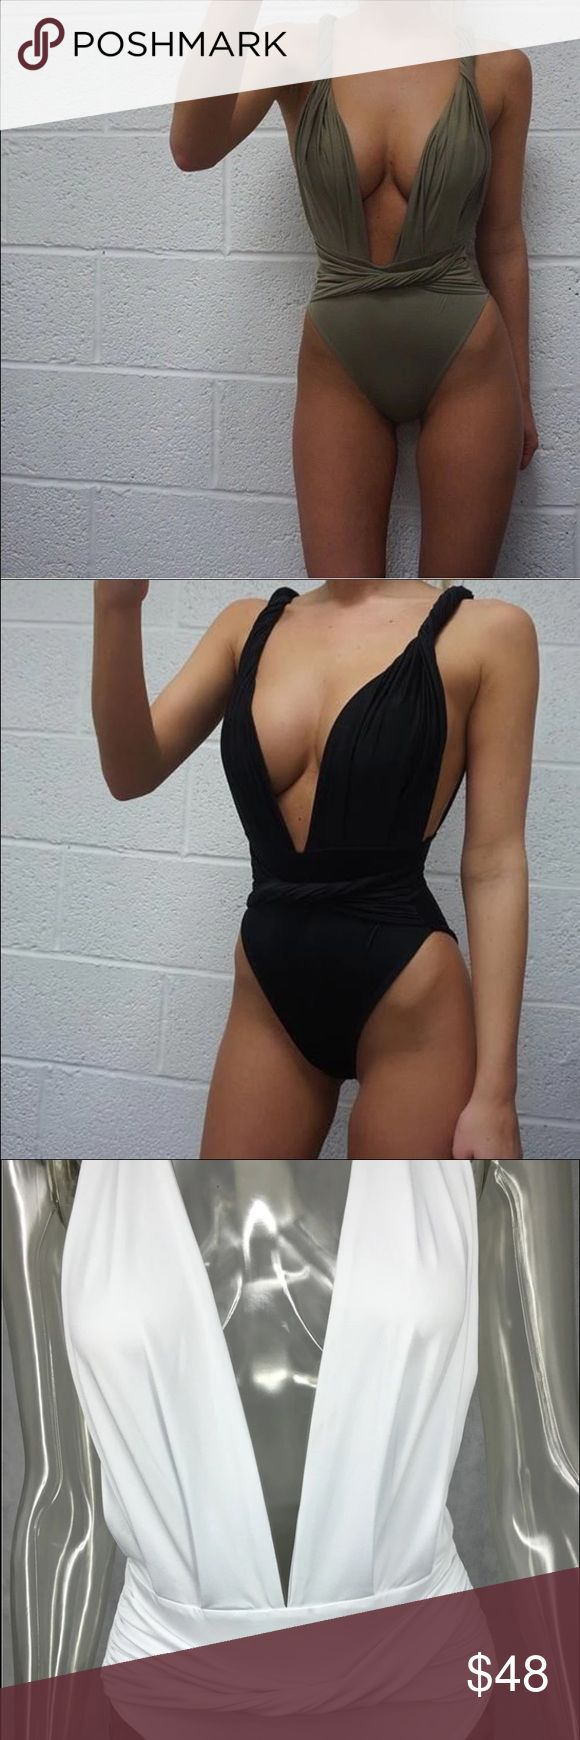 One piece low cut sexy bathing suit One piece low-cut sexy bathing suit! This bathing suit hides all the trouble spots yet still making you feel sexy on the inside and out! I have the suit in black white green and red! S-m-l! Let me know ladies and I will bring a shipment in! Please comment your size and color and I will create a listing for you! this is not from listed brand only here for exposure!!!! Zara Swim One Pieces